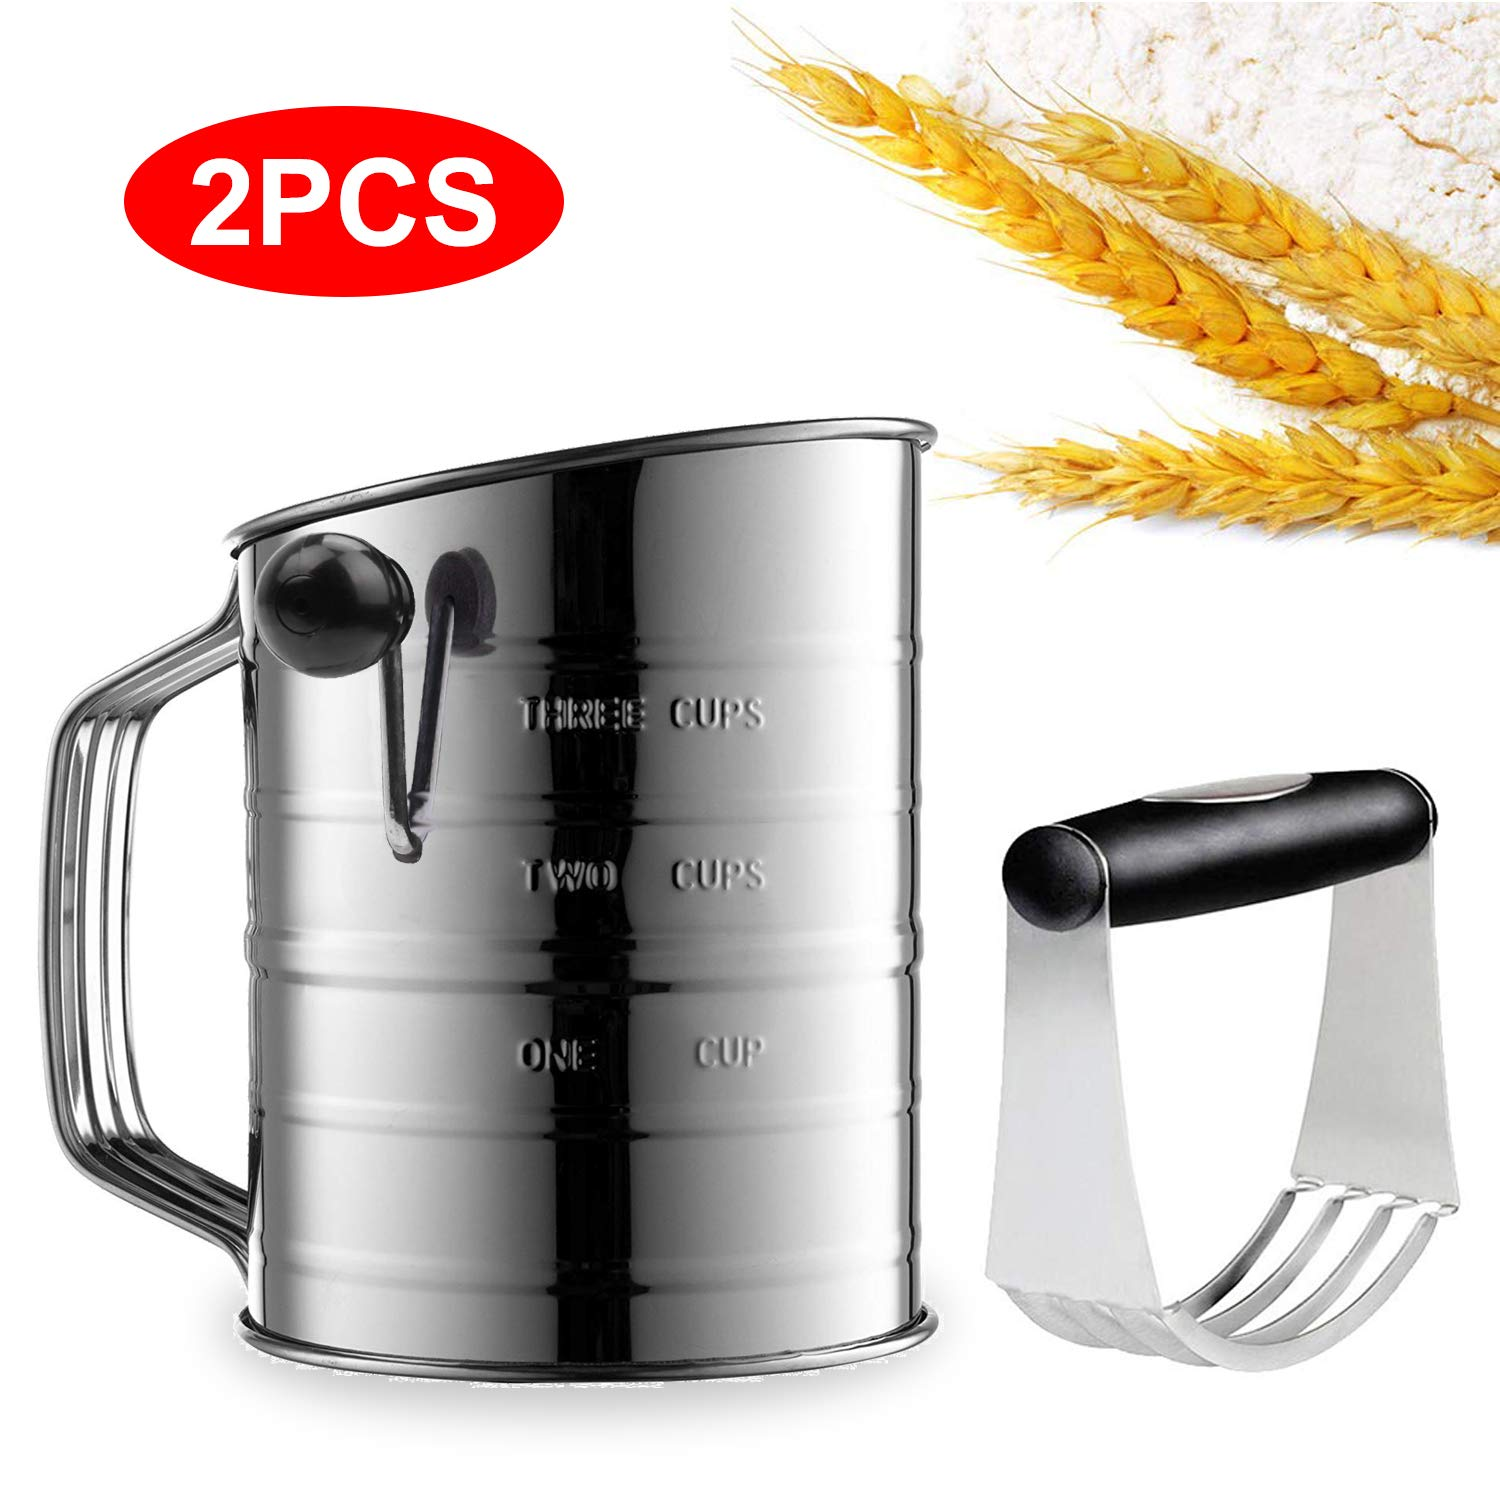 3 Cup Flour Sifter Stainless Steel,4 Wire Agitator Rotary Hand Crank Professional Pastry Cutter-Dough Blender Included